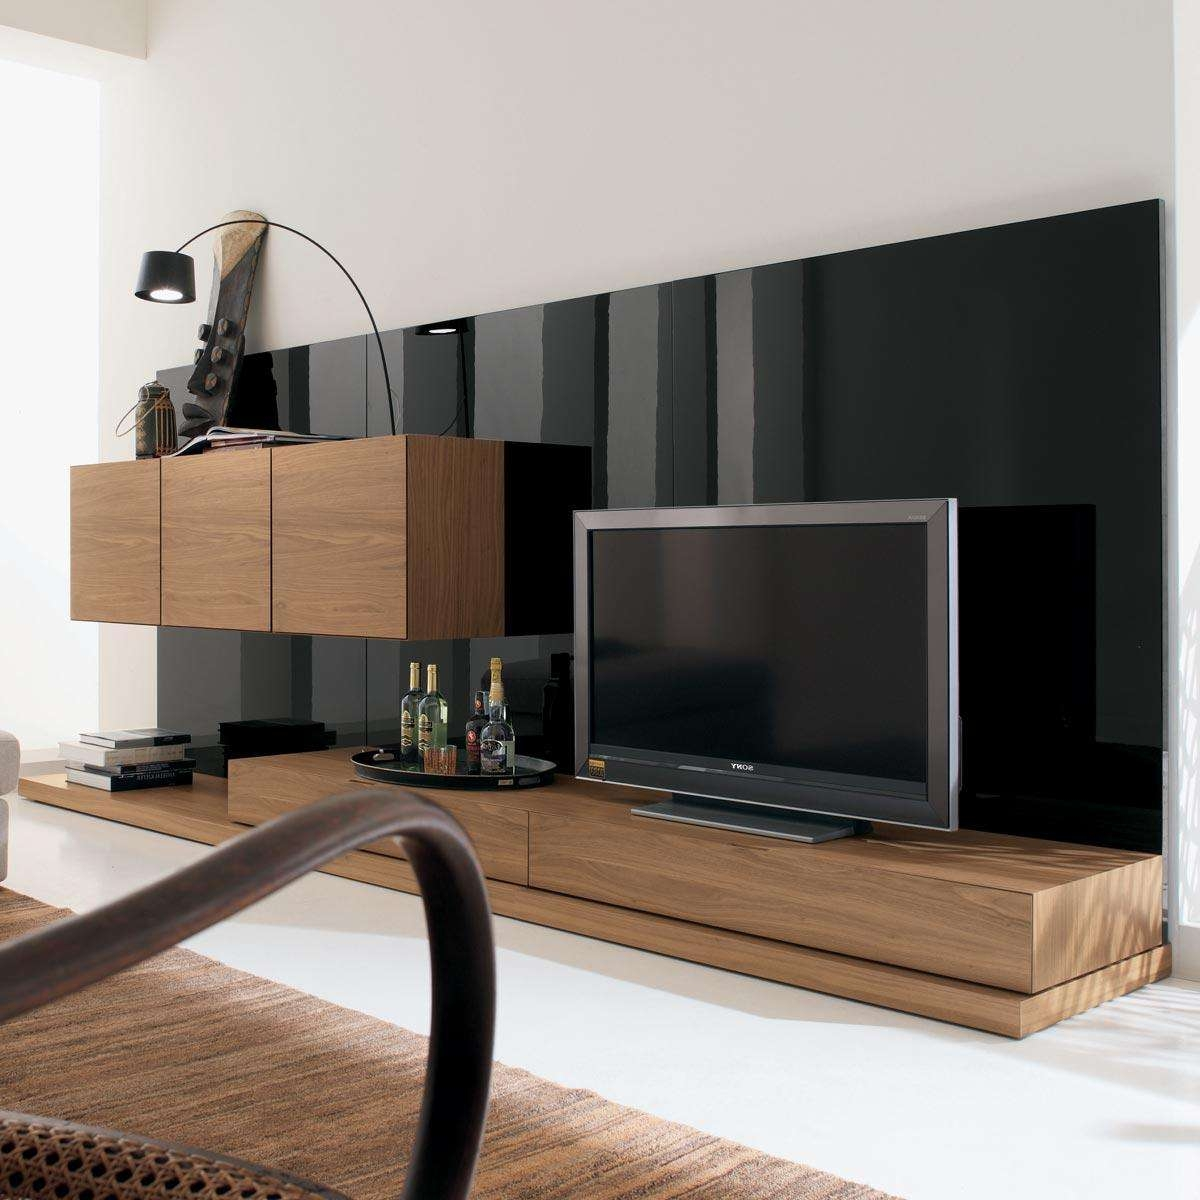 Modern Nature Wood Big Screen Tv Stand Wall Mounted Living Room Pertaining To Contemporary Tv Cabinets (View 12 of 20)